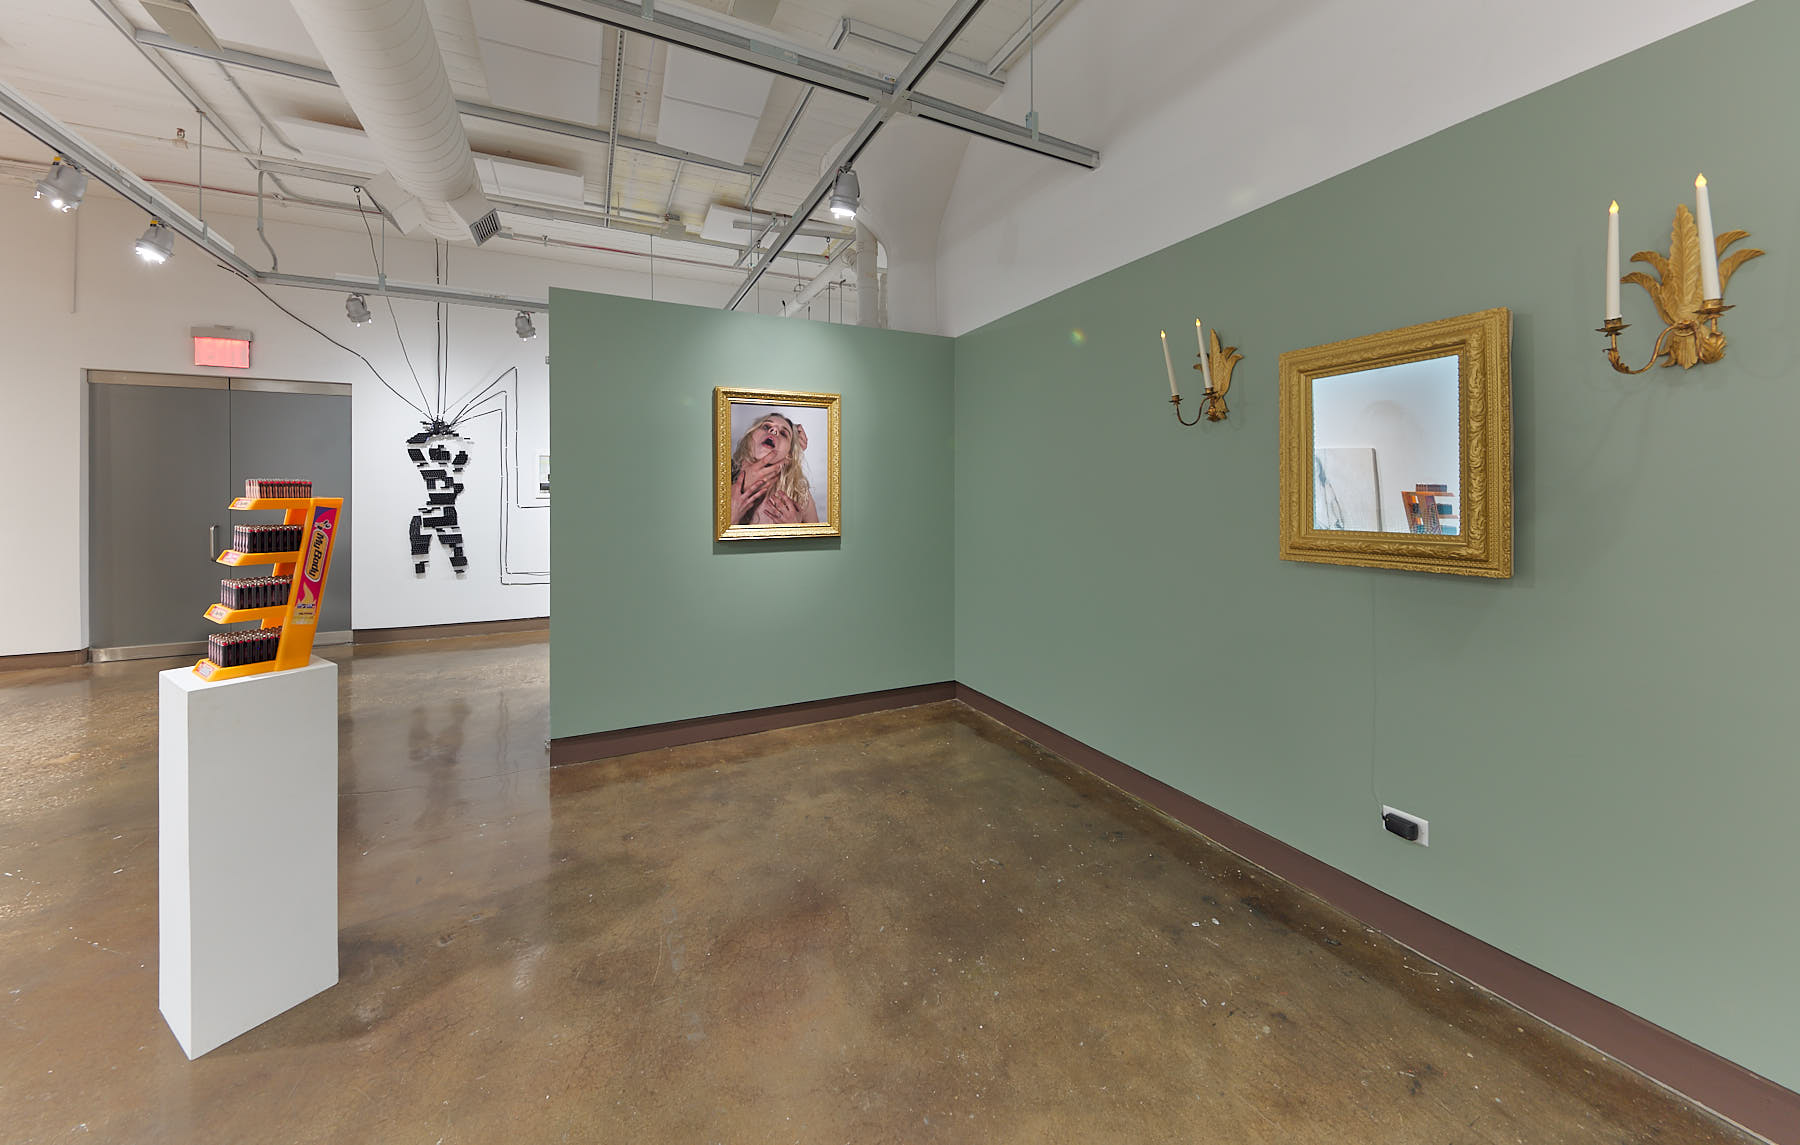 """An installation view of an exhibition at the SVA Chelsea gallery titled """"Sticks and Stones May Break My Bones, But Words Will Never Hurt Me"""". The view features a wall on the right hand side painted in a light green golor. On the right side a sculpture sits on a white pedestal. The artwork photographed in the center is by Hayley McCormack."""